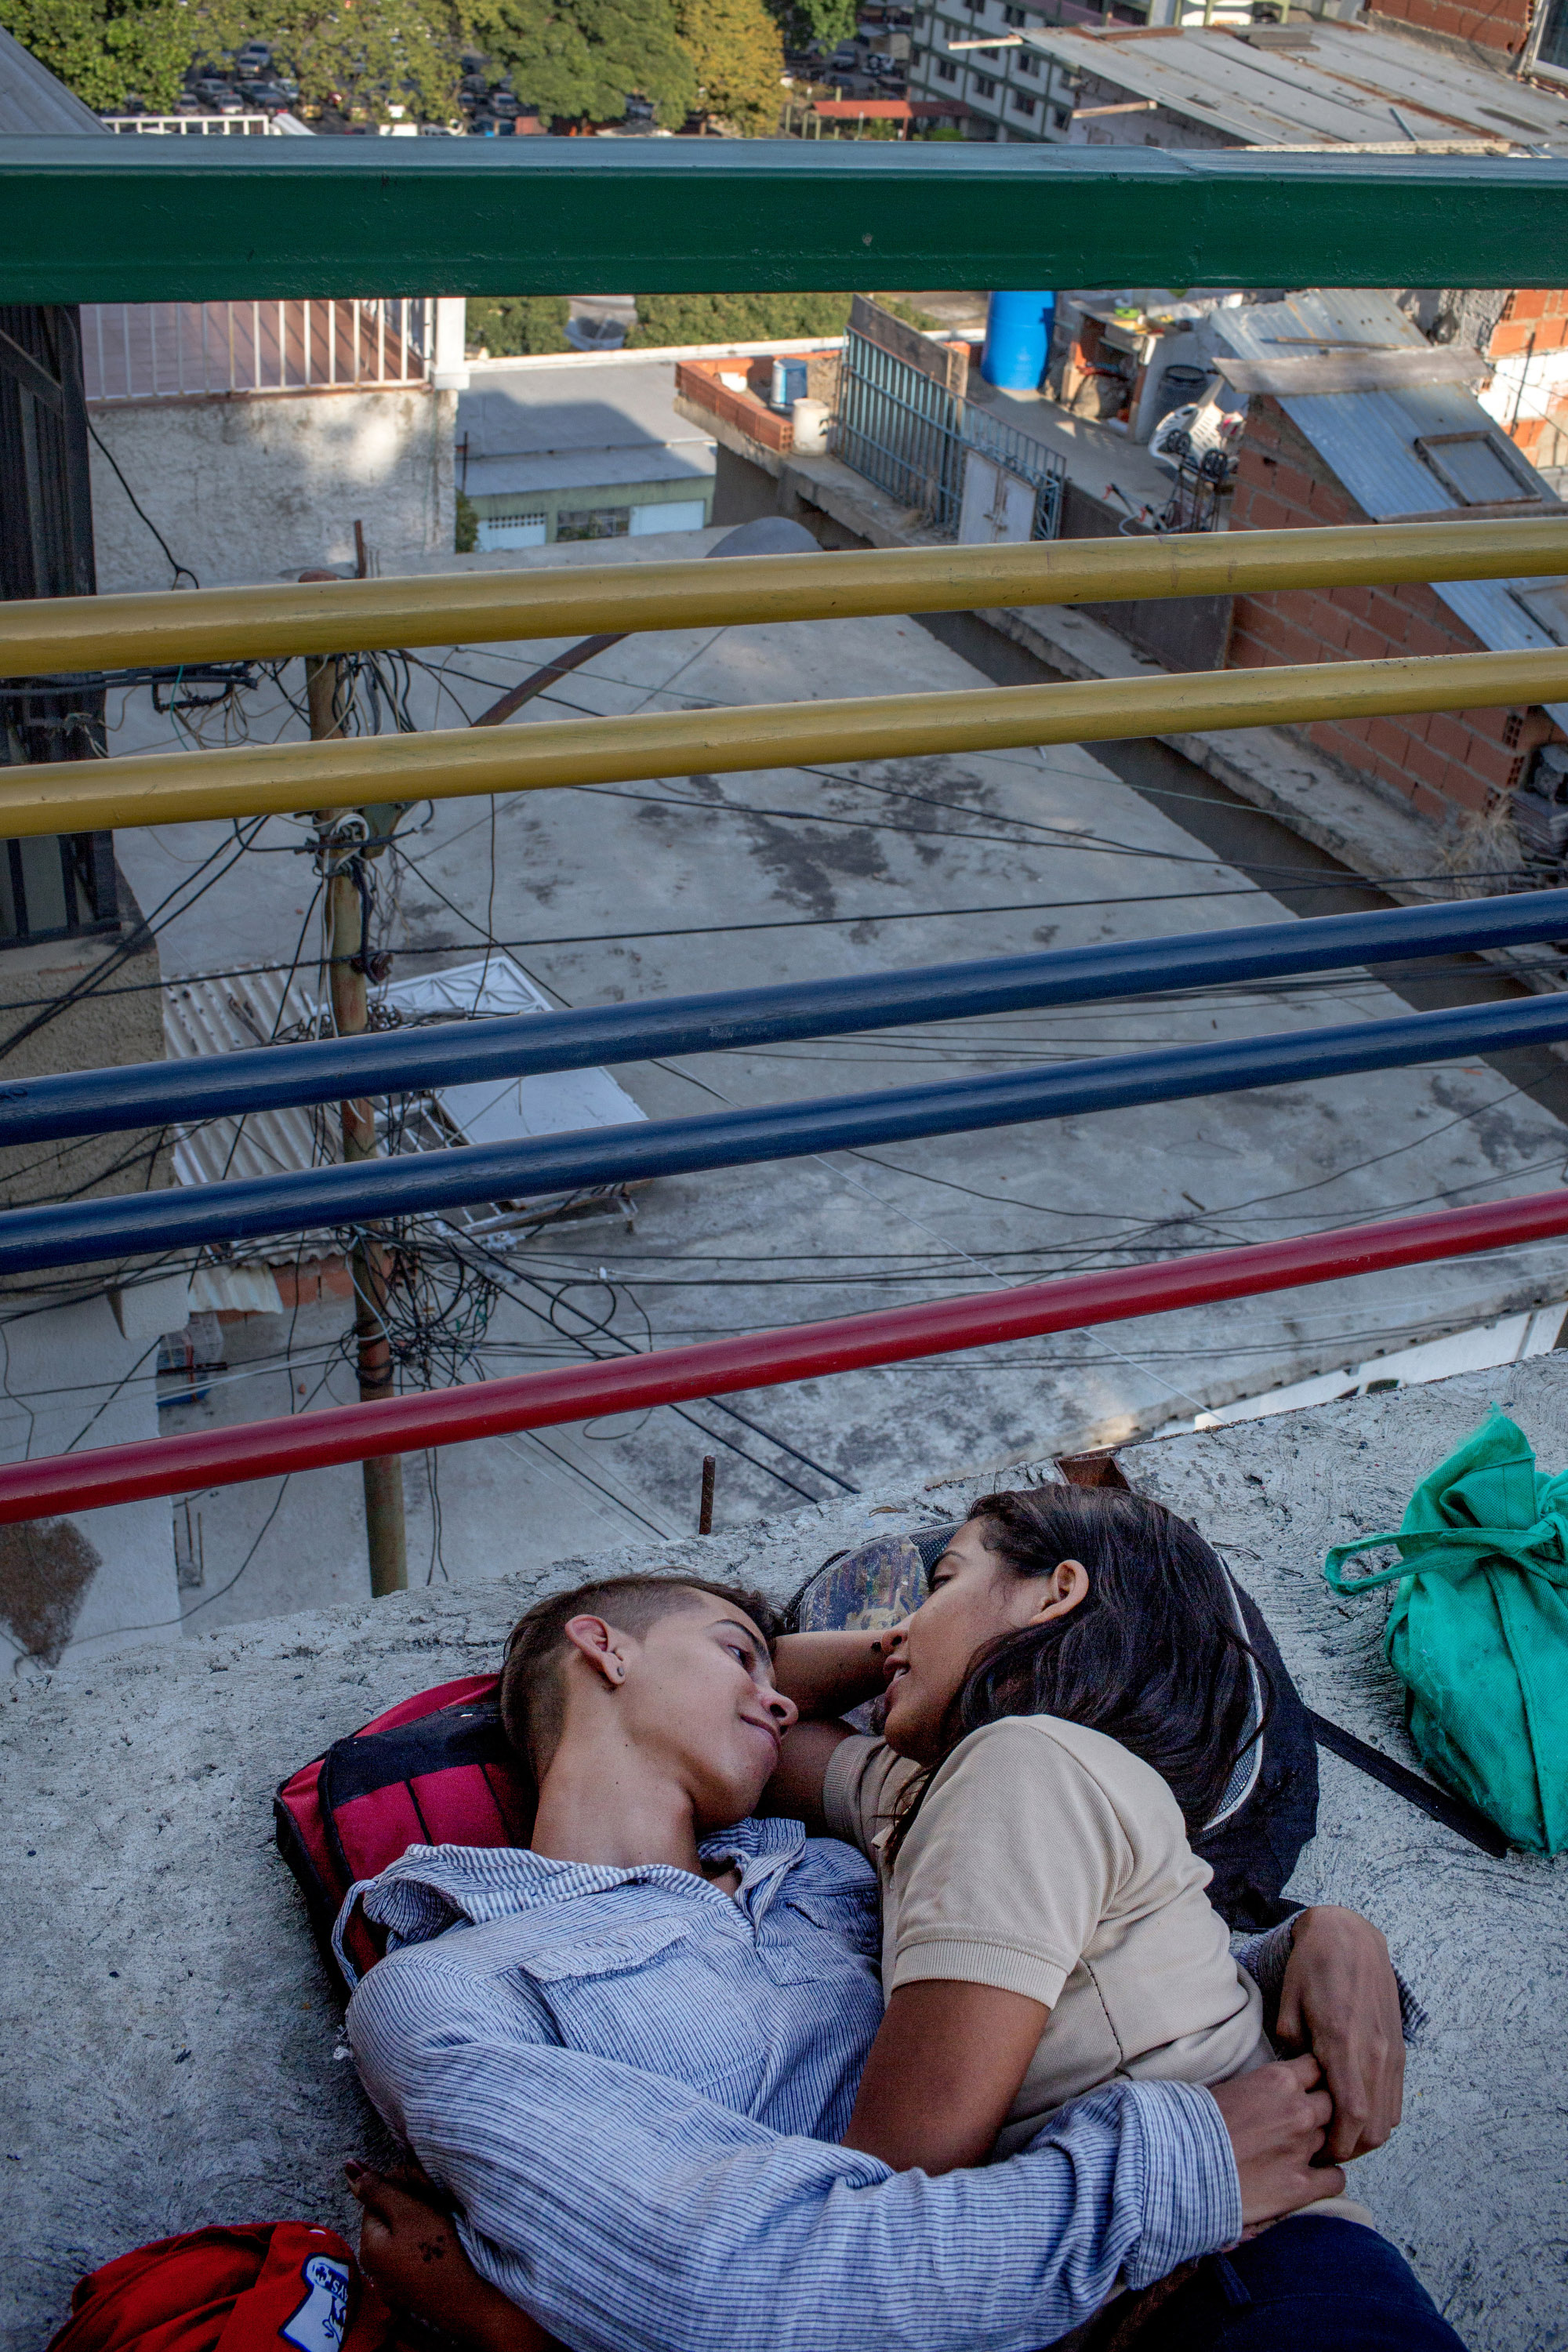 Javier and Solimar, a young couple, embrace after school in the neighborhood of El 23 de Enero in Caracas. Amid a severe economic and political crisis, thousands of young, creative and ambitious Venezuelans are fleeing in search of more opportunity, less violence, and a stable economy. Despite the obstacles, some stay and try to make it in Caracas, many for a variety of reasons cannot leave, others have chosen not to flee.  From The New York Times:    Those Who Stay